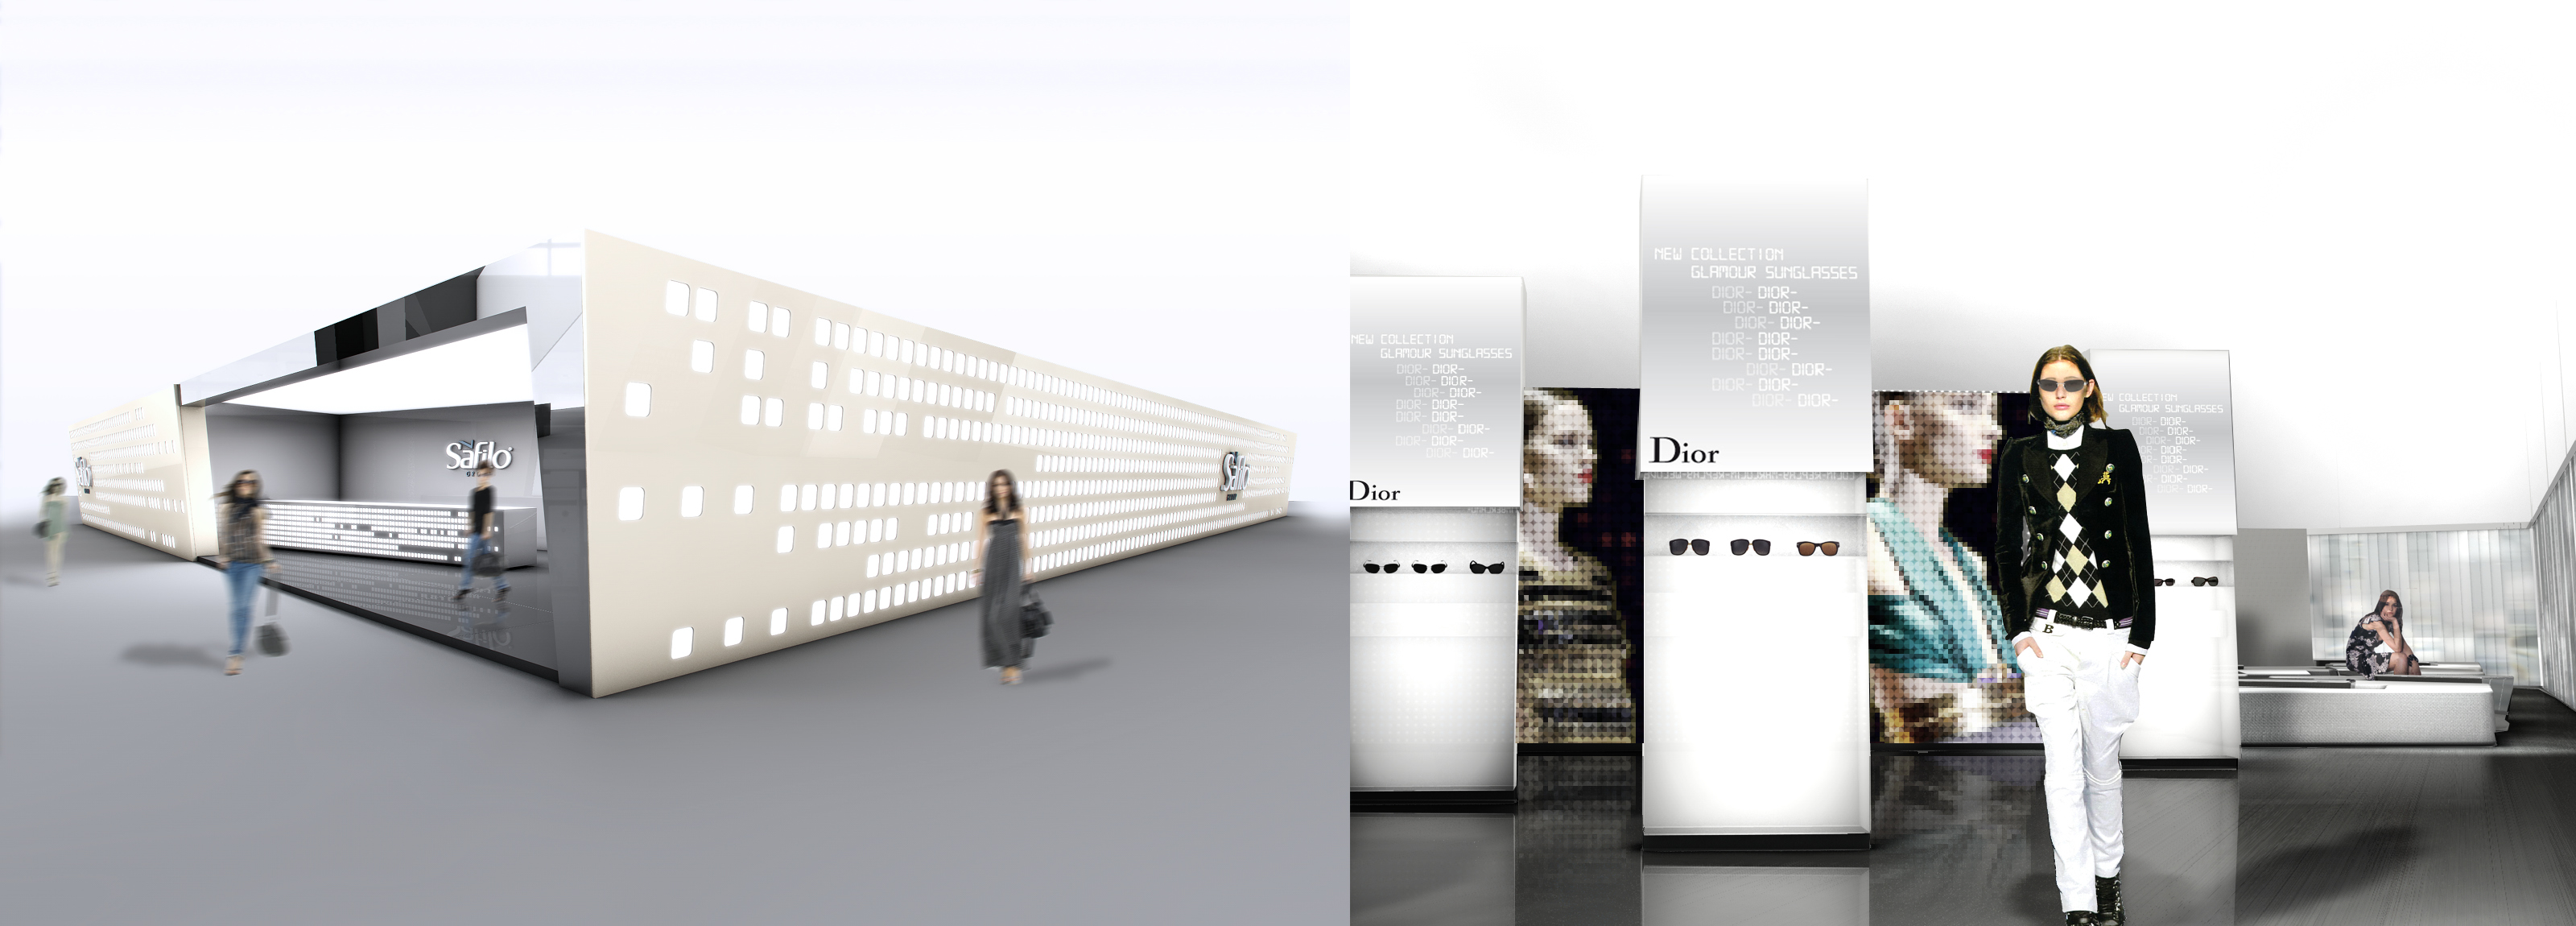 Minimalism and lightness for the booth designed of Hangar Design Group for Safilo.